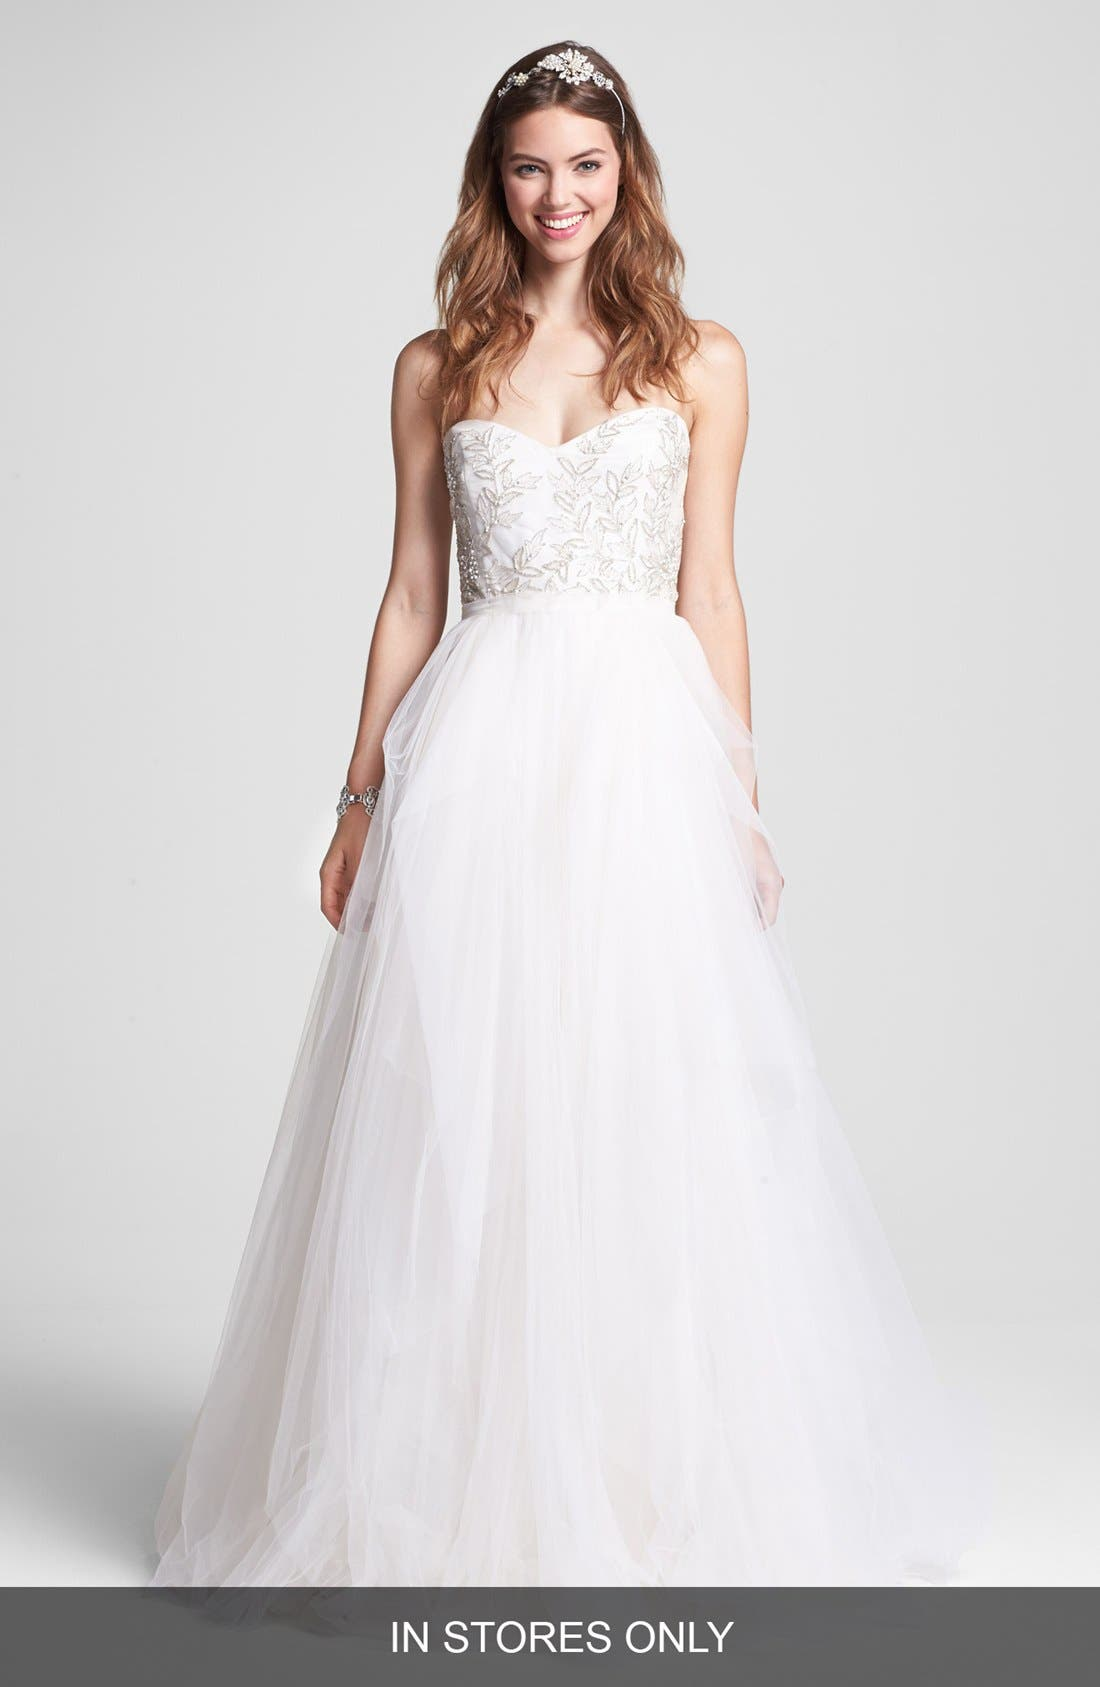 Main Image - Roses by Reem Acra 'Ivy' Embellished Tulle Ballgown (In Stores Only)